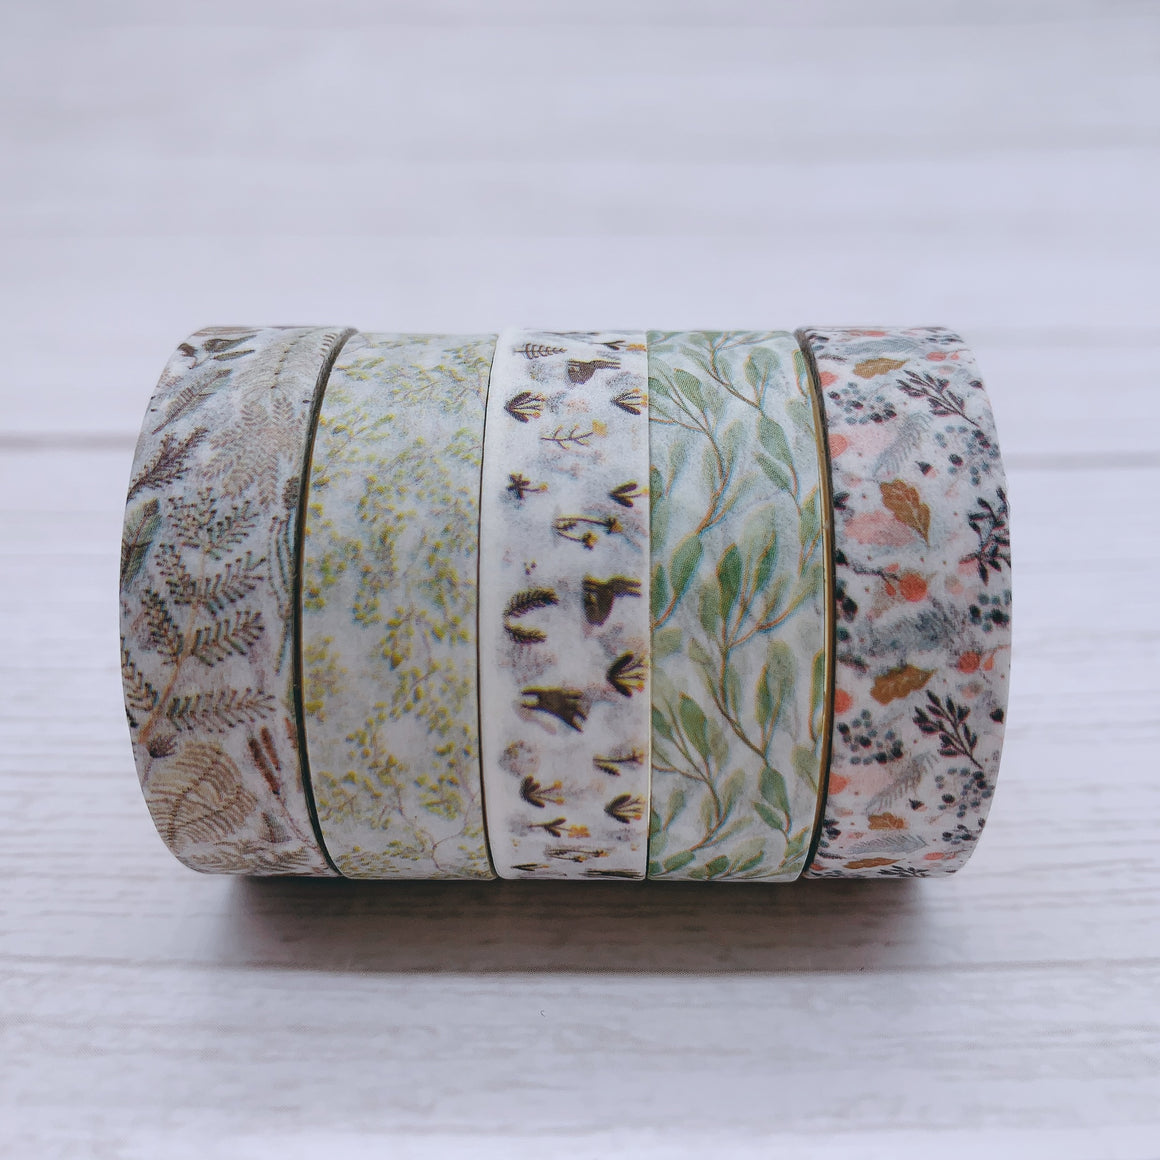 5 Piece Osamu Washi Tape Set | The Washi Tape Shop. Beautiful Washi and Decorative Tape For Bullet Journals, Gift Wrapping, Planner Decoration and DIY Projects